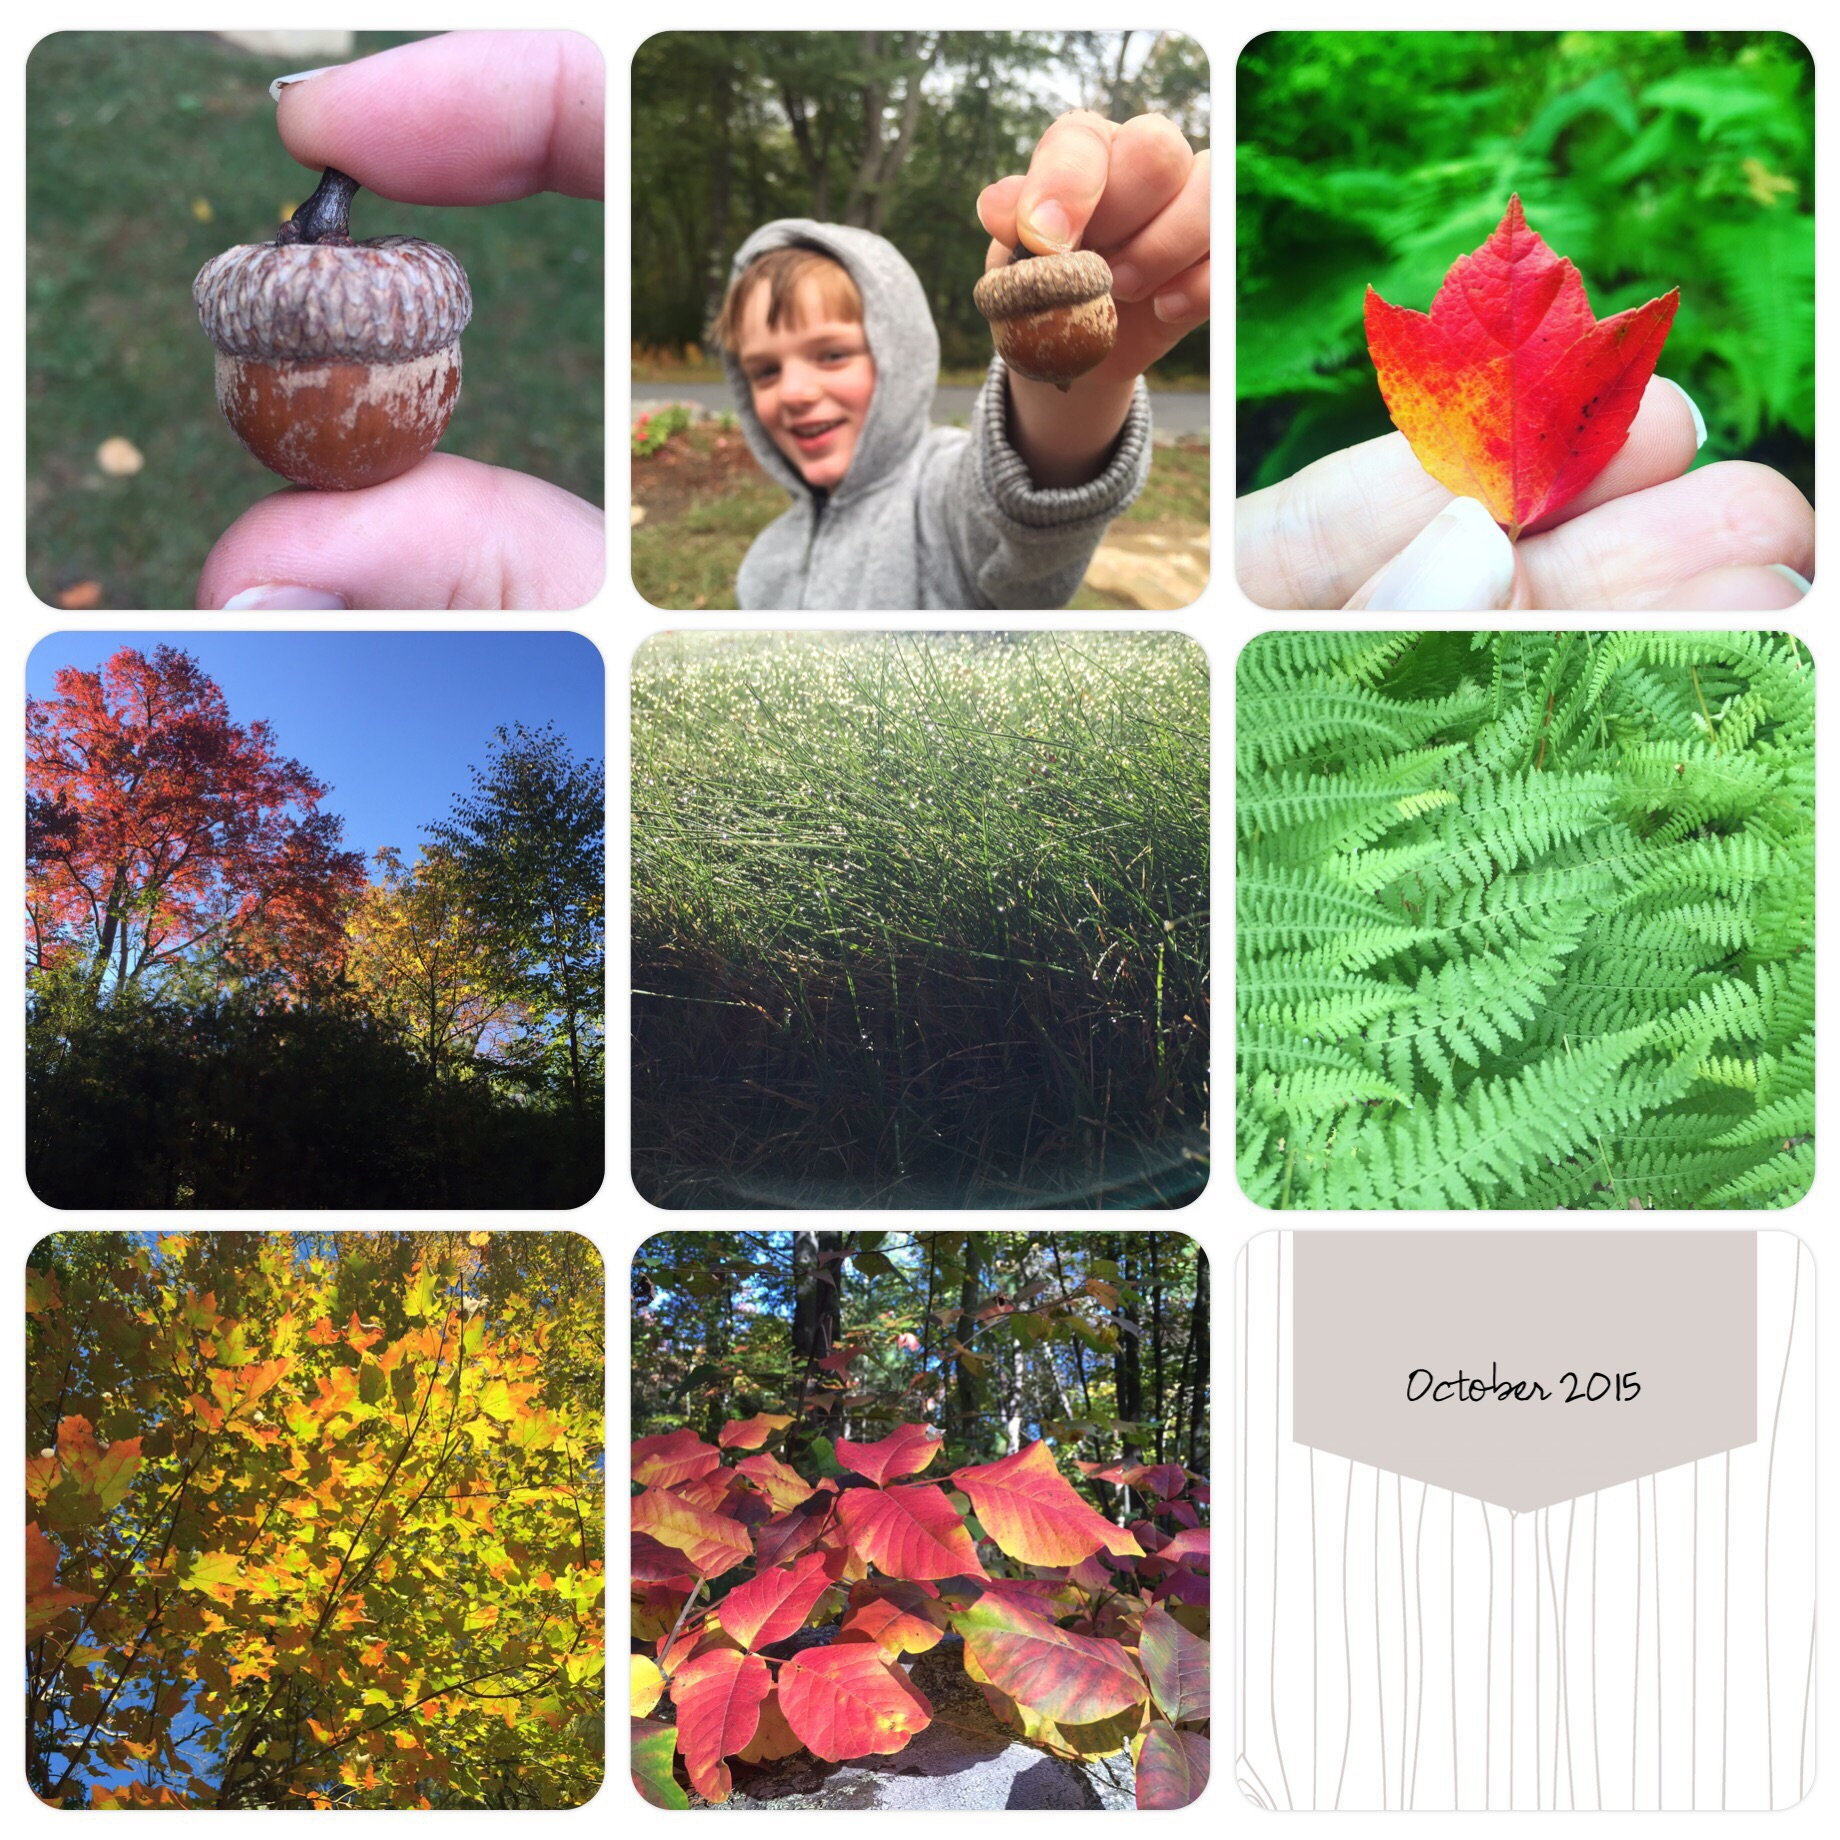 October and signs of a new season